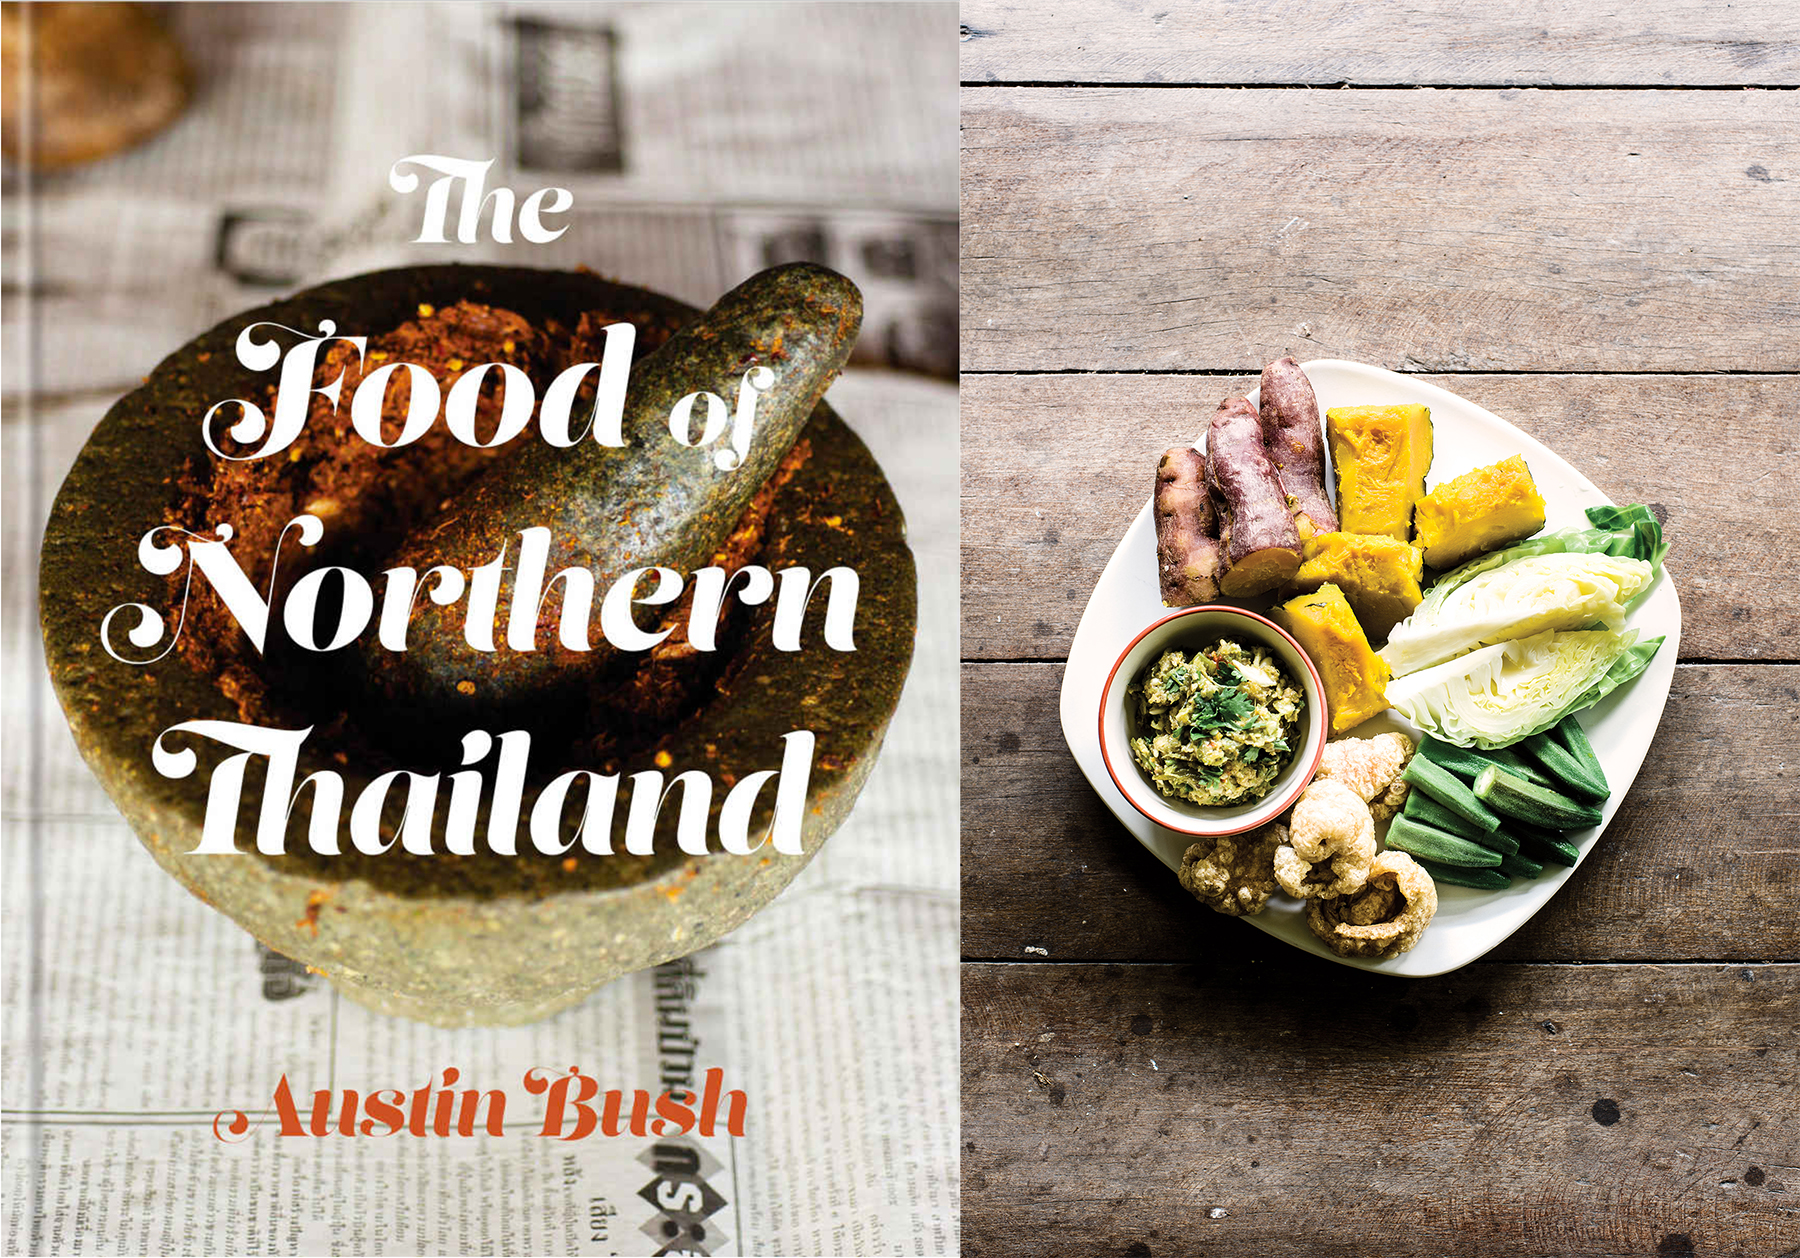 """© Penguin Random House and Austin Bush.   I love """"The Food Of Northern Thailand"""" cookbook. I am from Ampoe San Pa Tong in Chiang Mai, which falls in the broader region that Austin focused on for this book. No one actually knows that town except for a handful farangs (foreigners) who really spend their time to explore that region beyond the Night Bazaar and elephant tours. I did not expect it, but I ended up learning more about the history and foodways of a place I grew up in through this book.  A first reading of the book left me feeling unsure about my ability to cook from it. Then I reread it more carefully with an open mind, but I still worried about being unable to find certain ingredients such as fermented bean disks or mak kuen, a type of pepper. I was delighted to discover that most of the ingredients required are easily available at my local markets, inspiring me to feature the book's recipes at my pop-ups and for this Tapestry Suppers event.  For example, this summer, we have an abundance of eggplants (whether Japanese, Chinese or Italian - they all do the job!), tomatoes and peppers at the market. Spring onions with green tops and bulbs are so sweet and tender right now, they are a perfect substitute for Chinese onions used in the book. We are serving Akha-style mashed potatoes with Akha-style meat loaf, dishes that sound familiar to us but are also very different in their seasoning and cooking techniques. Even the mushrooms and yu choy in this menu are cultivated locally in Santa Cruz County. The meat is from Llano Seco Ranch, its already so flavorful and sweet and it gets even better when cooked in banana leaves over a charcoal fire.  I encourage you to use just a spoon and your hand with this meal. Grab a piece of vegetable and scoop up a little dip (don't double dip, of course). Peel a charcoal-roasted egg. Grab a piece of meat and sticky rice for a one-bite delight. Then chase it all down with a very tart soup!"""